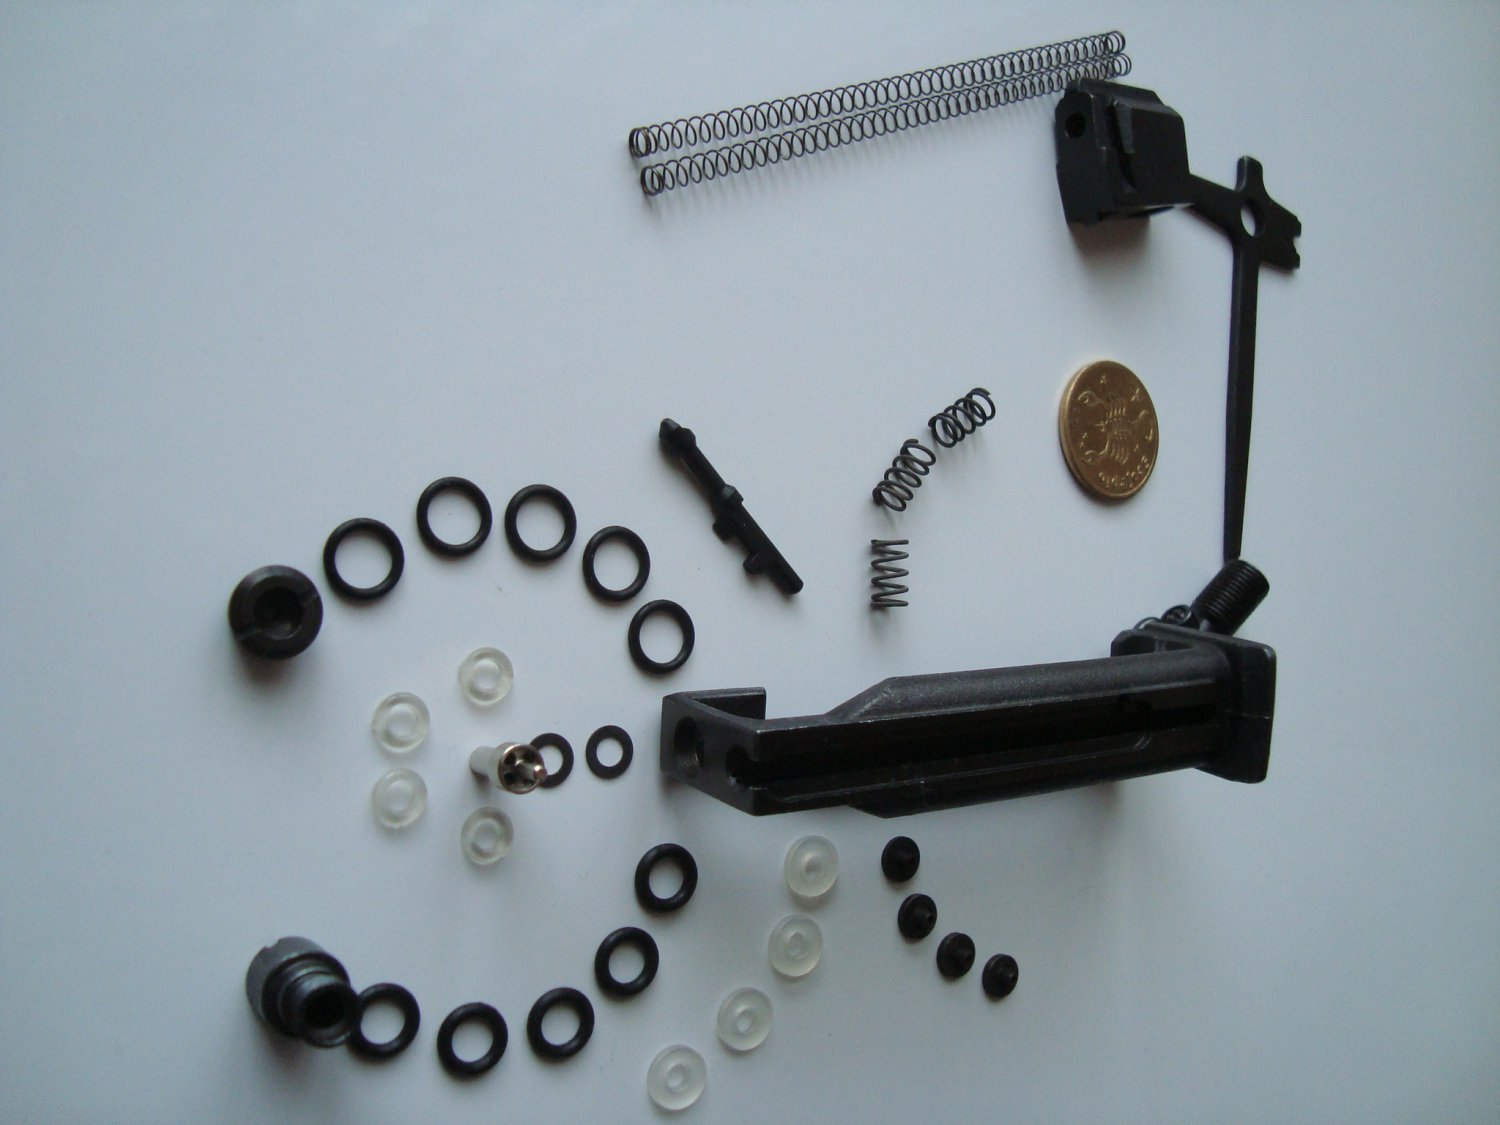 Magazine for MP-654K with repair details: valve, air-bulb, o-rings, saddle, screw, kit made to order